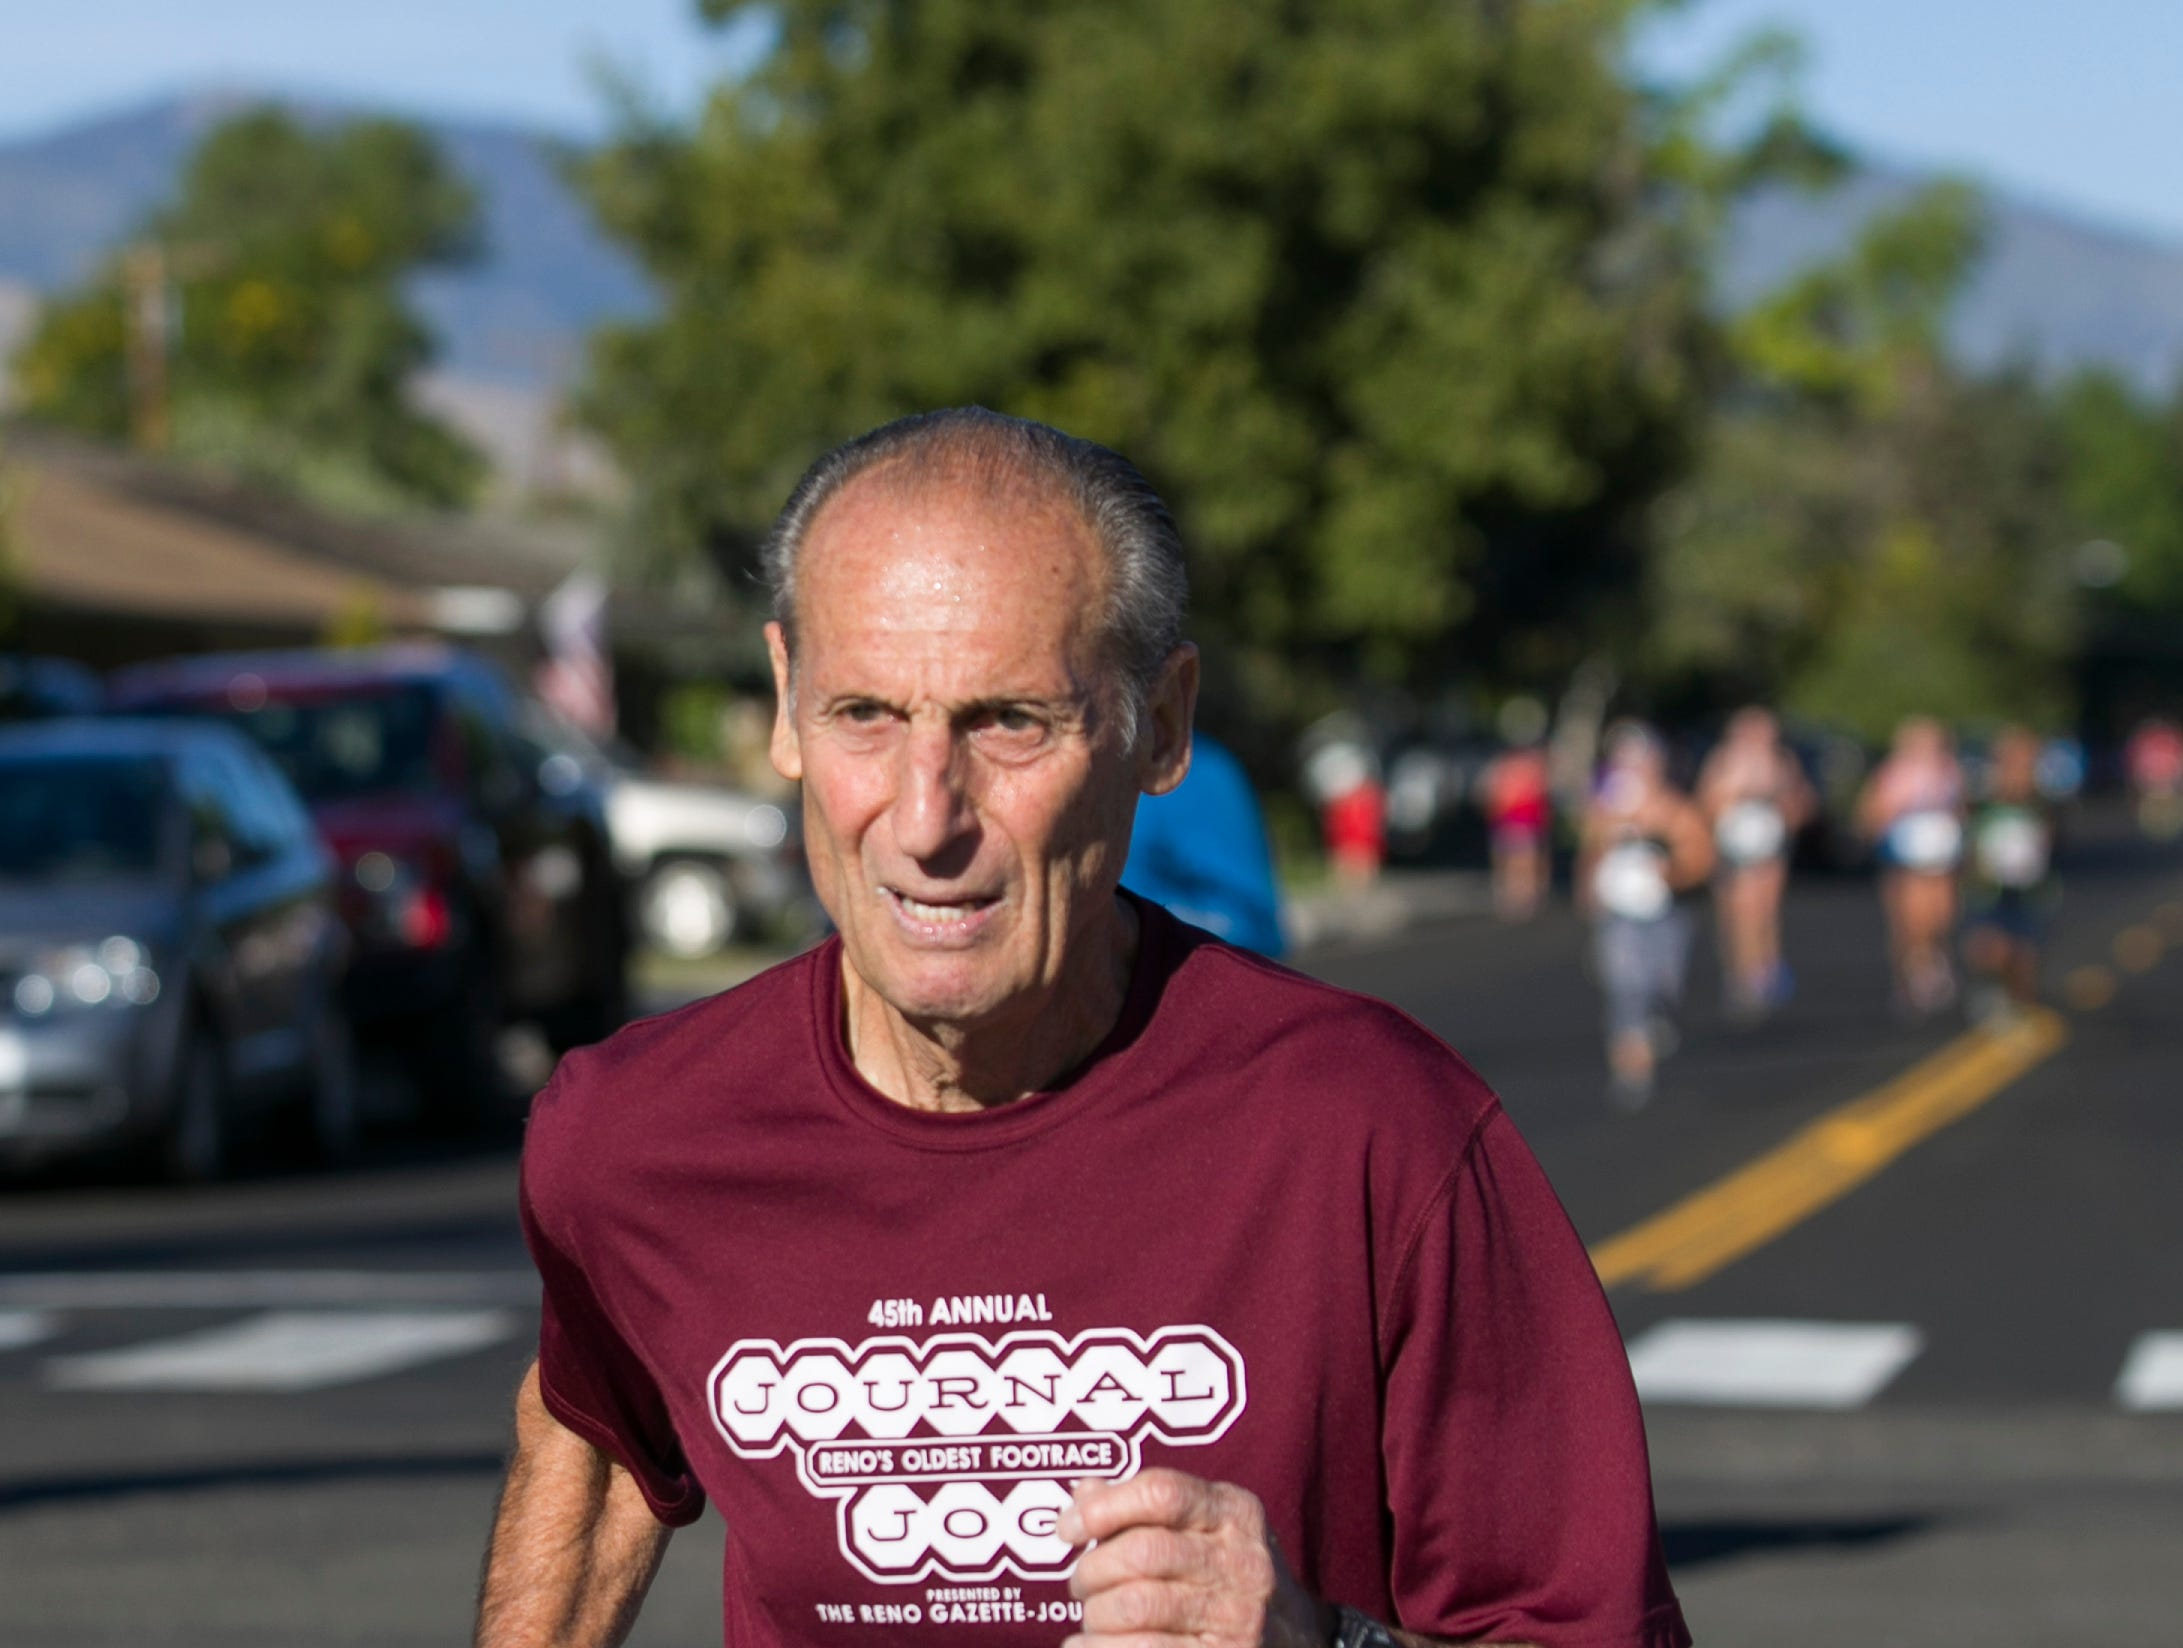 Bill Bengiveno from San Jose, CA runs during the 50th Annual Journal Jog in Reno, Nevada on Sunday, September 9, 2018.